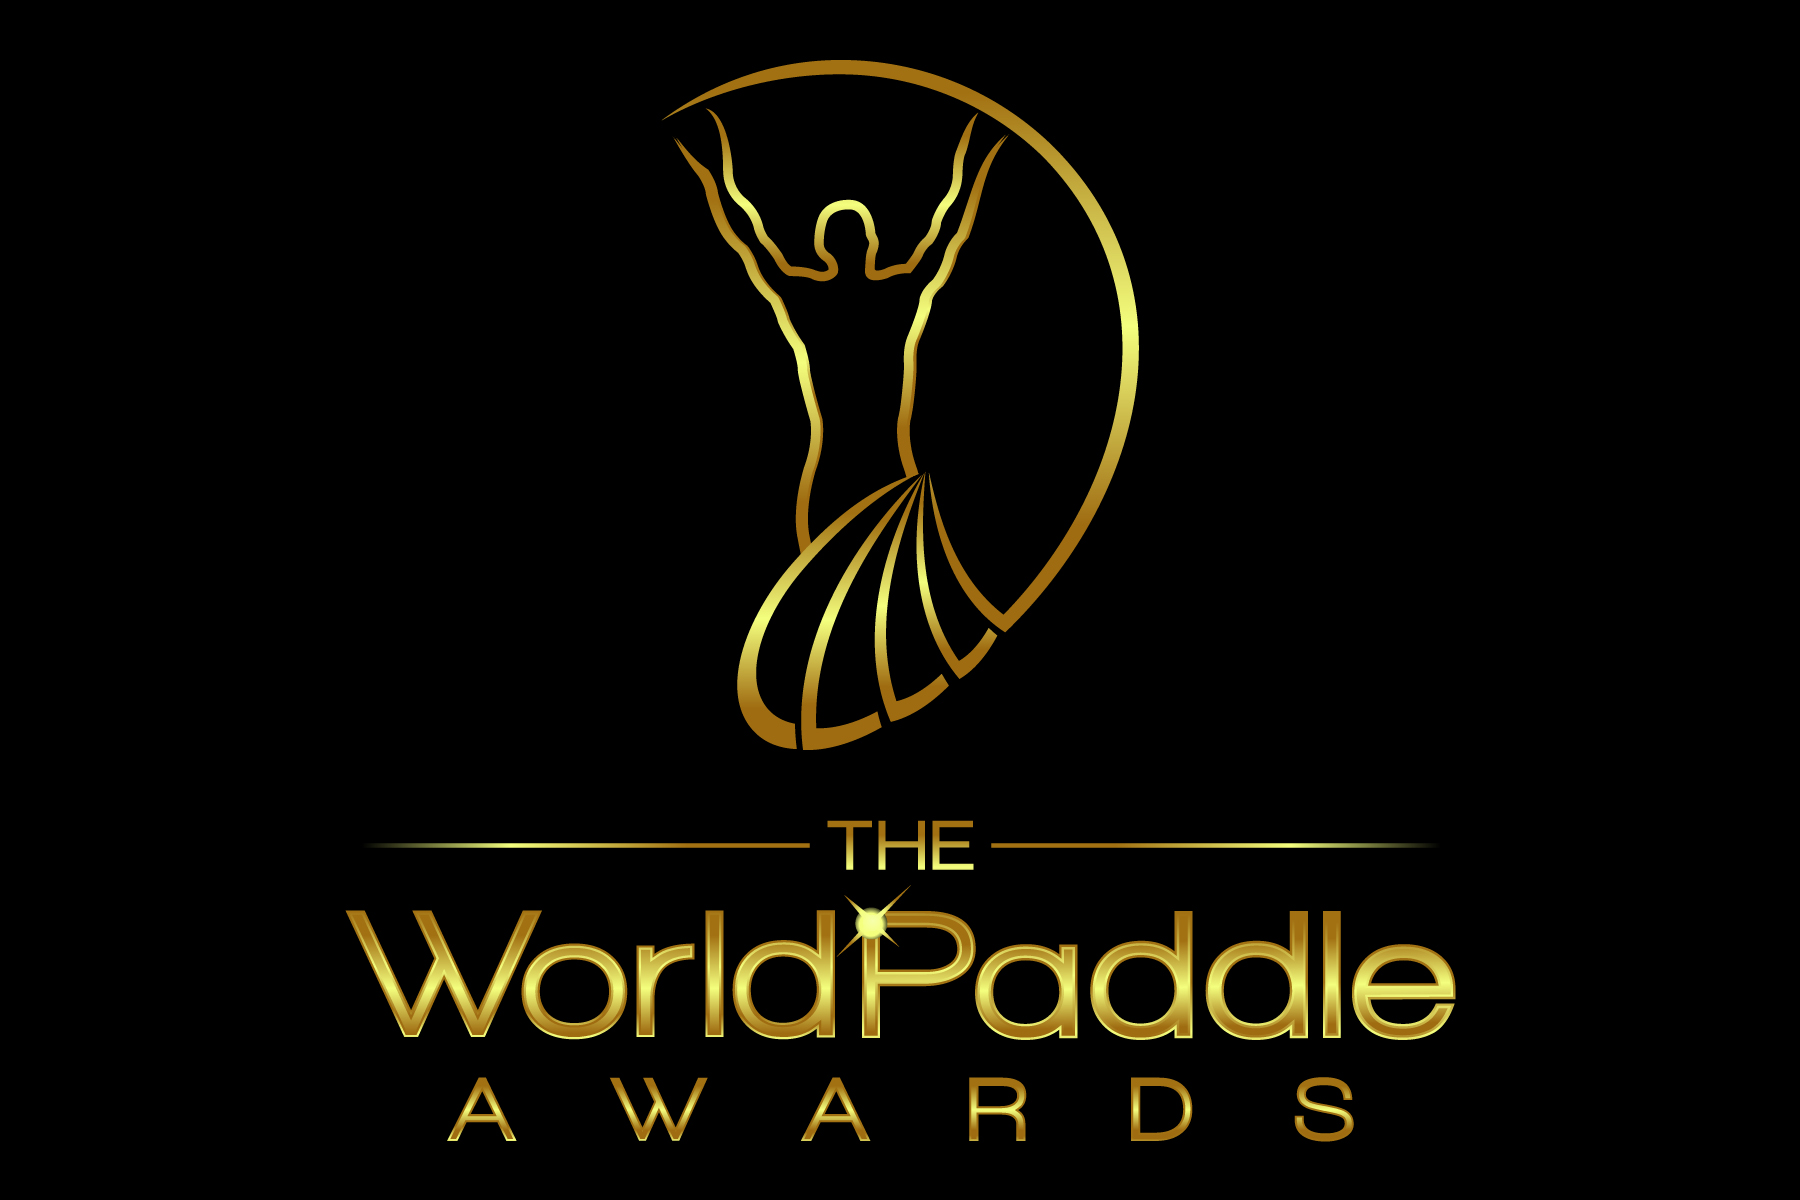 world paddle awards logo